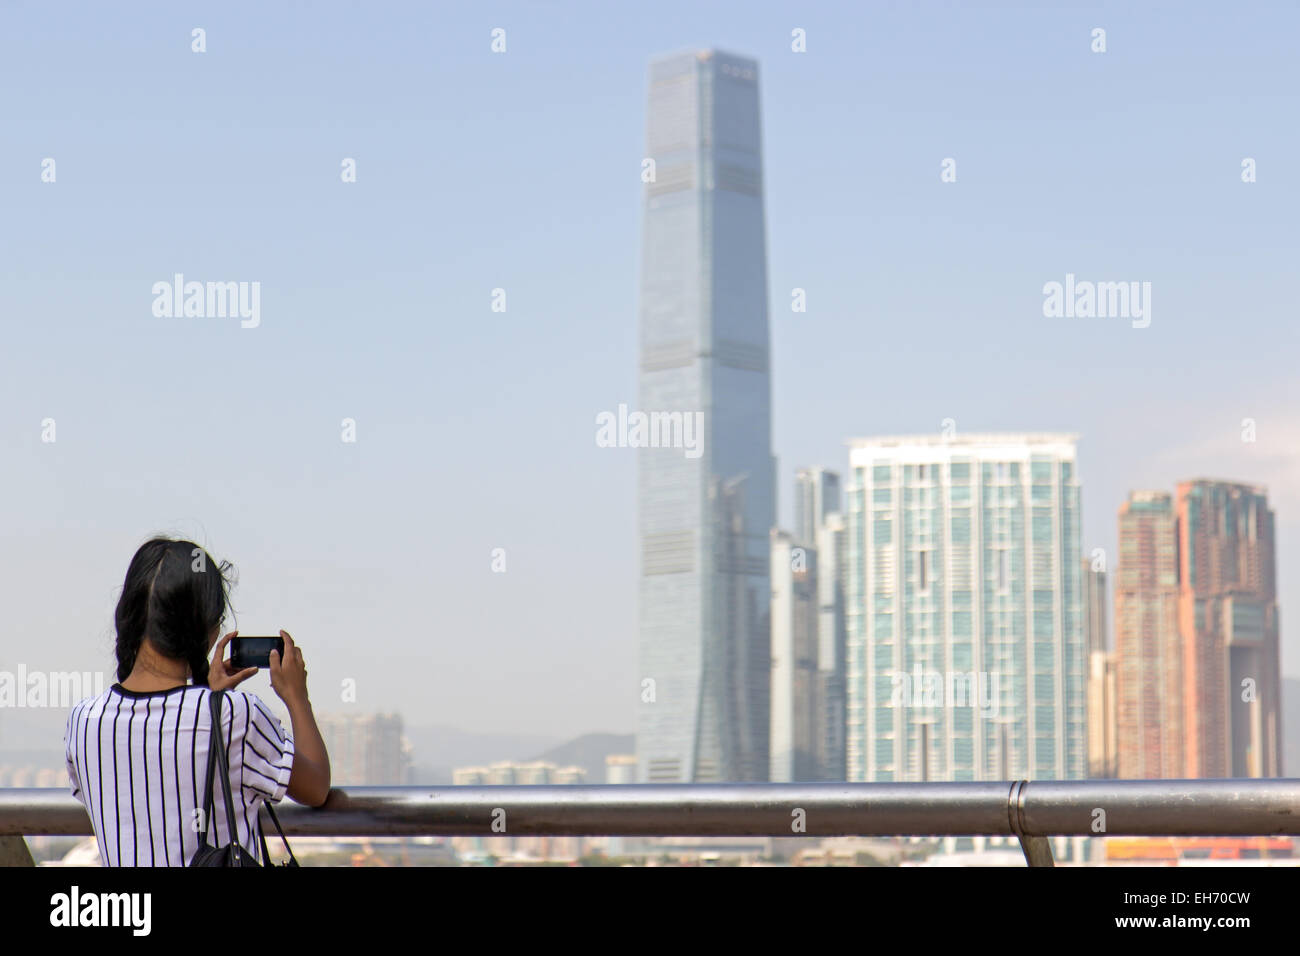 woman on the coast photographs Hong Kong - Stock Image